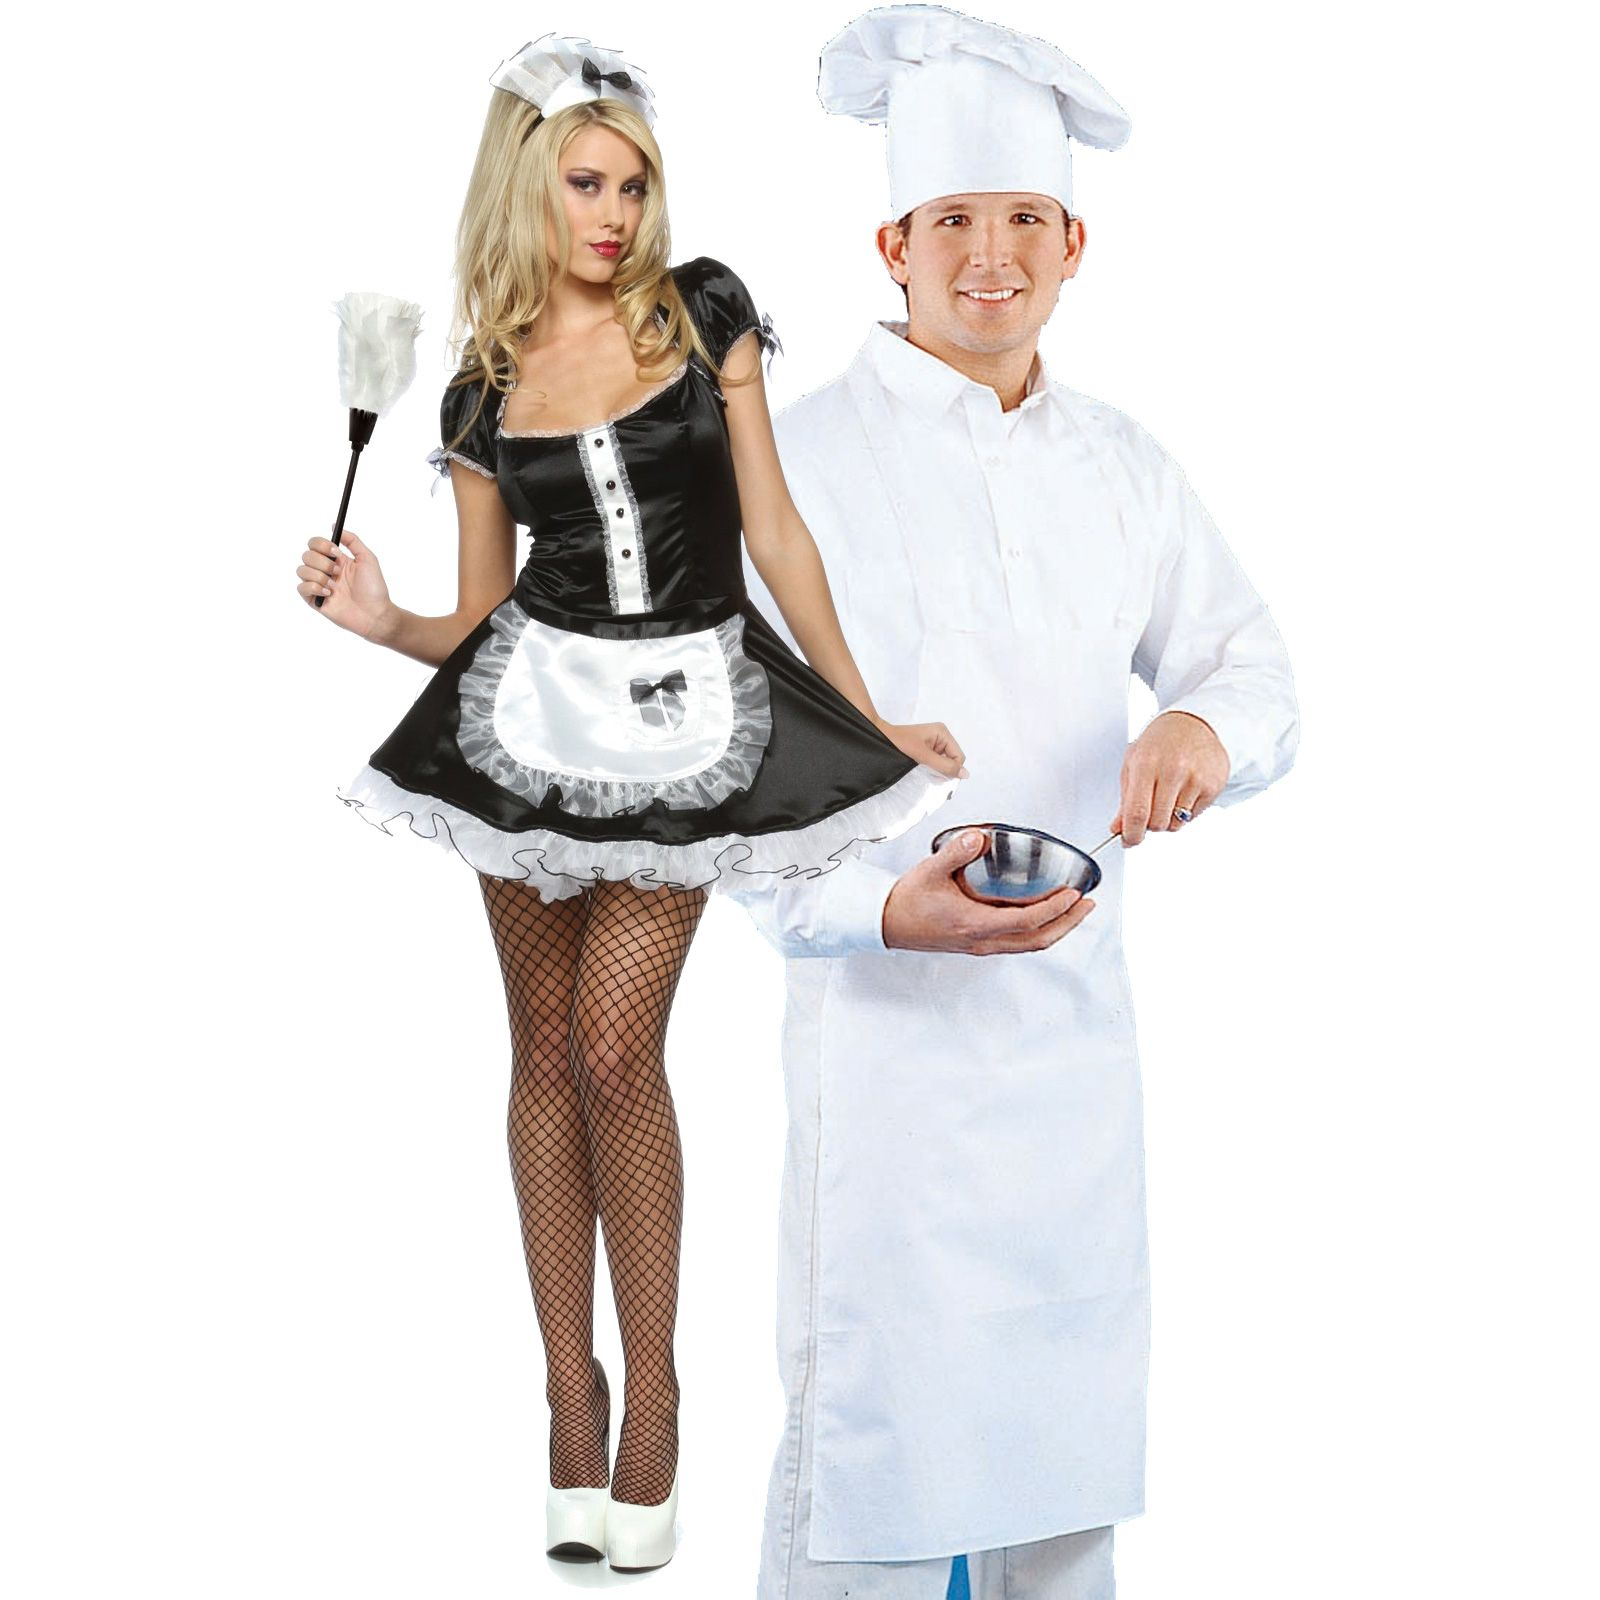 Bonjour Maid and Master Chef Couples Costume - On Sale Today!